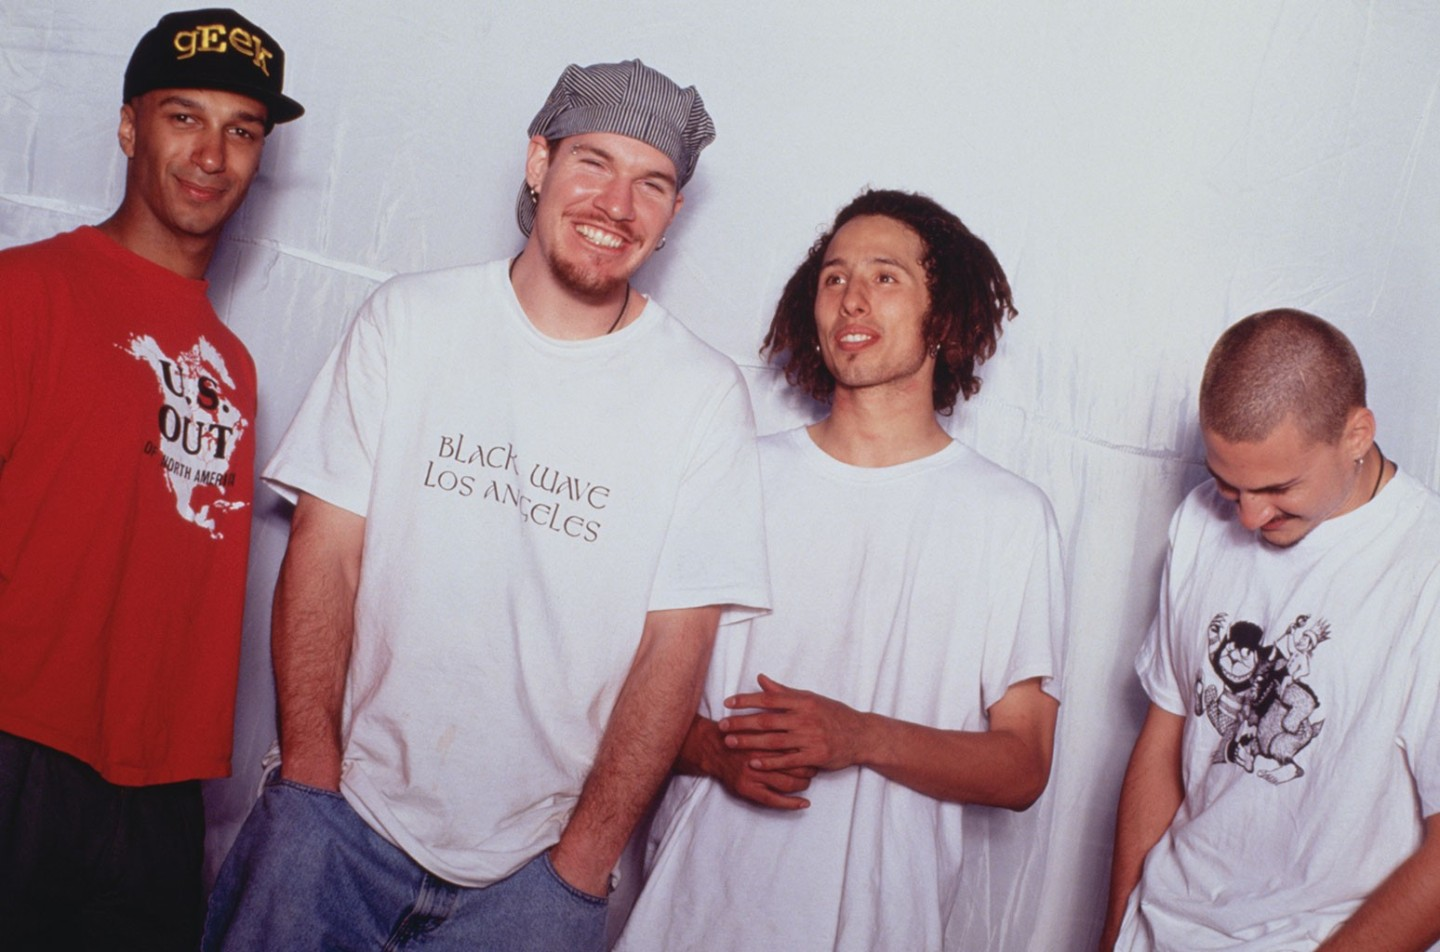 RAGE AGAINST THE MACHINE GRUBUNUN ISIM HIKAYESI